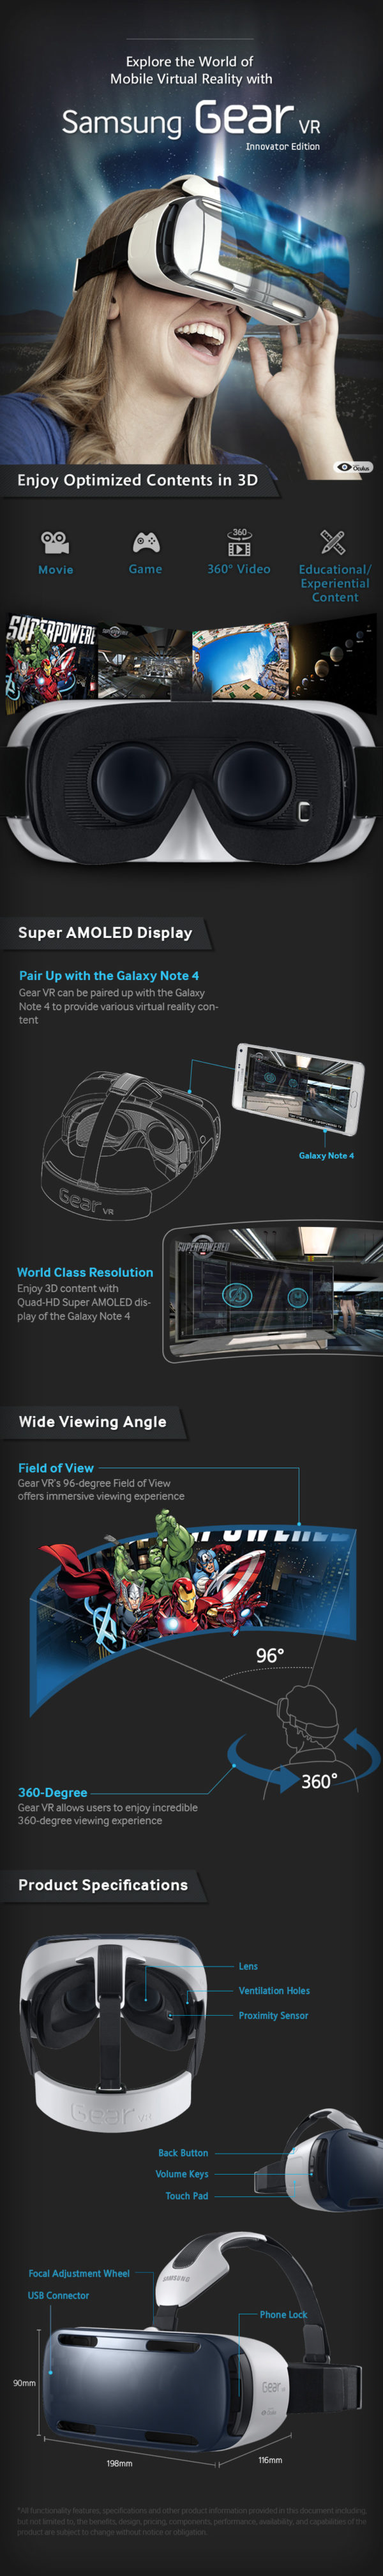 Galaxy_gear-infographic_full_resolution